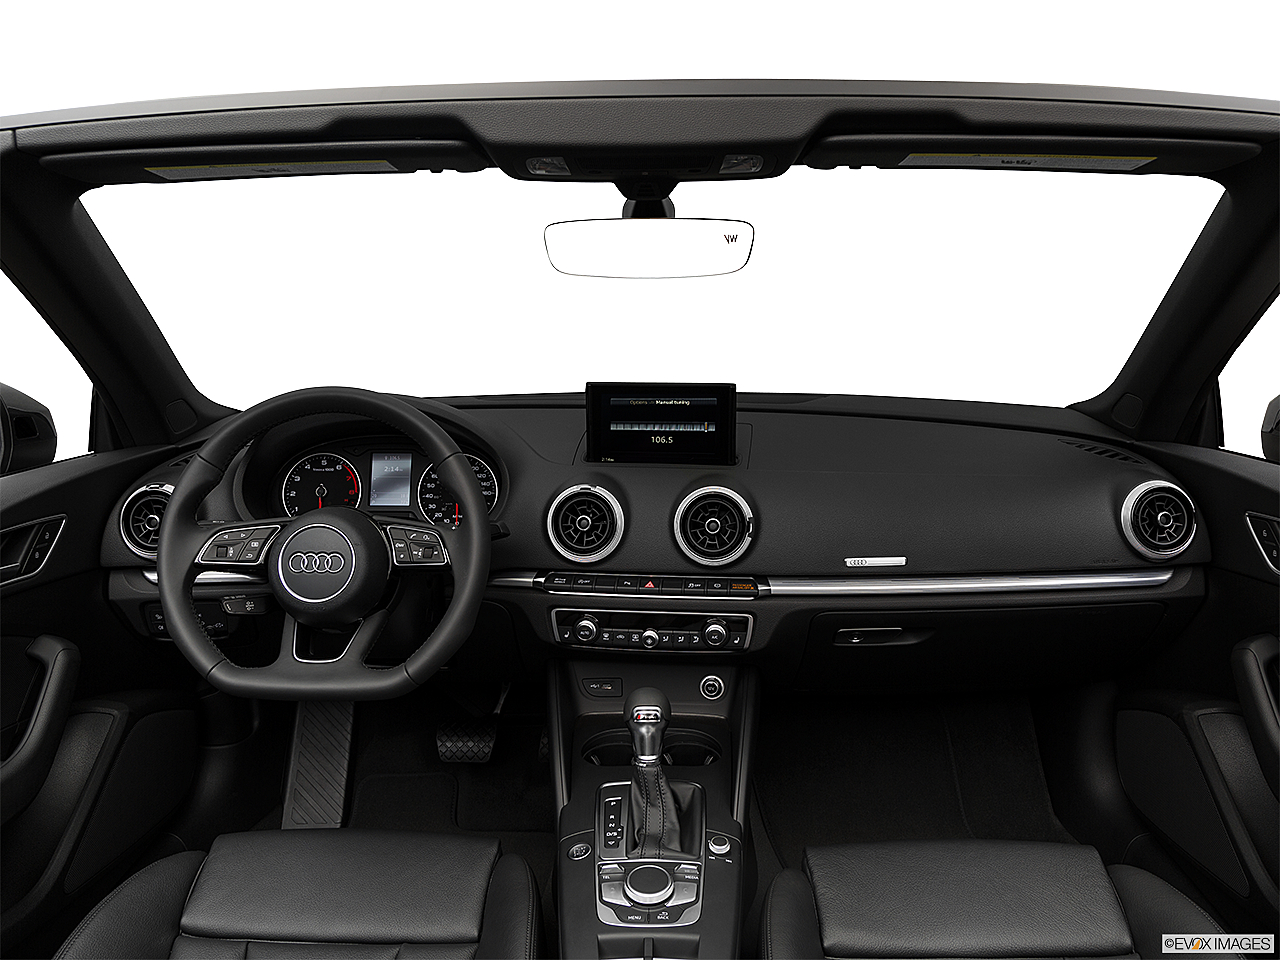 2018 Audi A3 Premium Plus 2.0 TFSI, centered wide dash shot